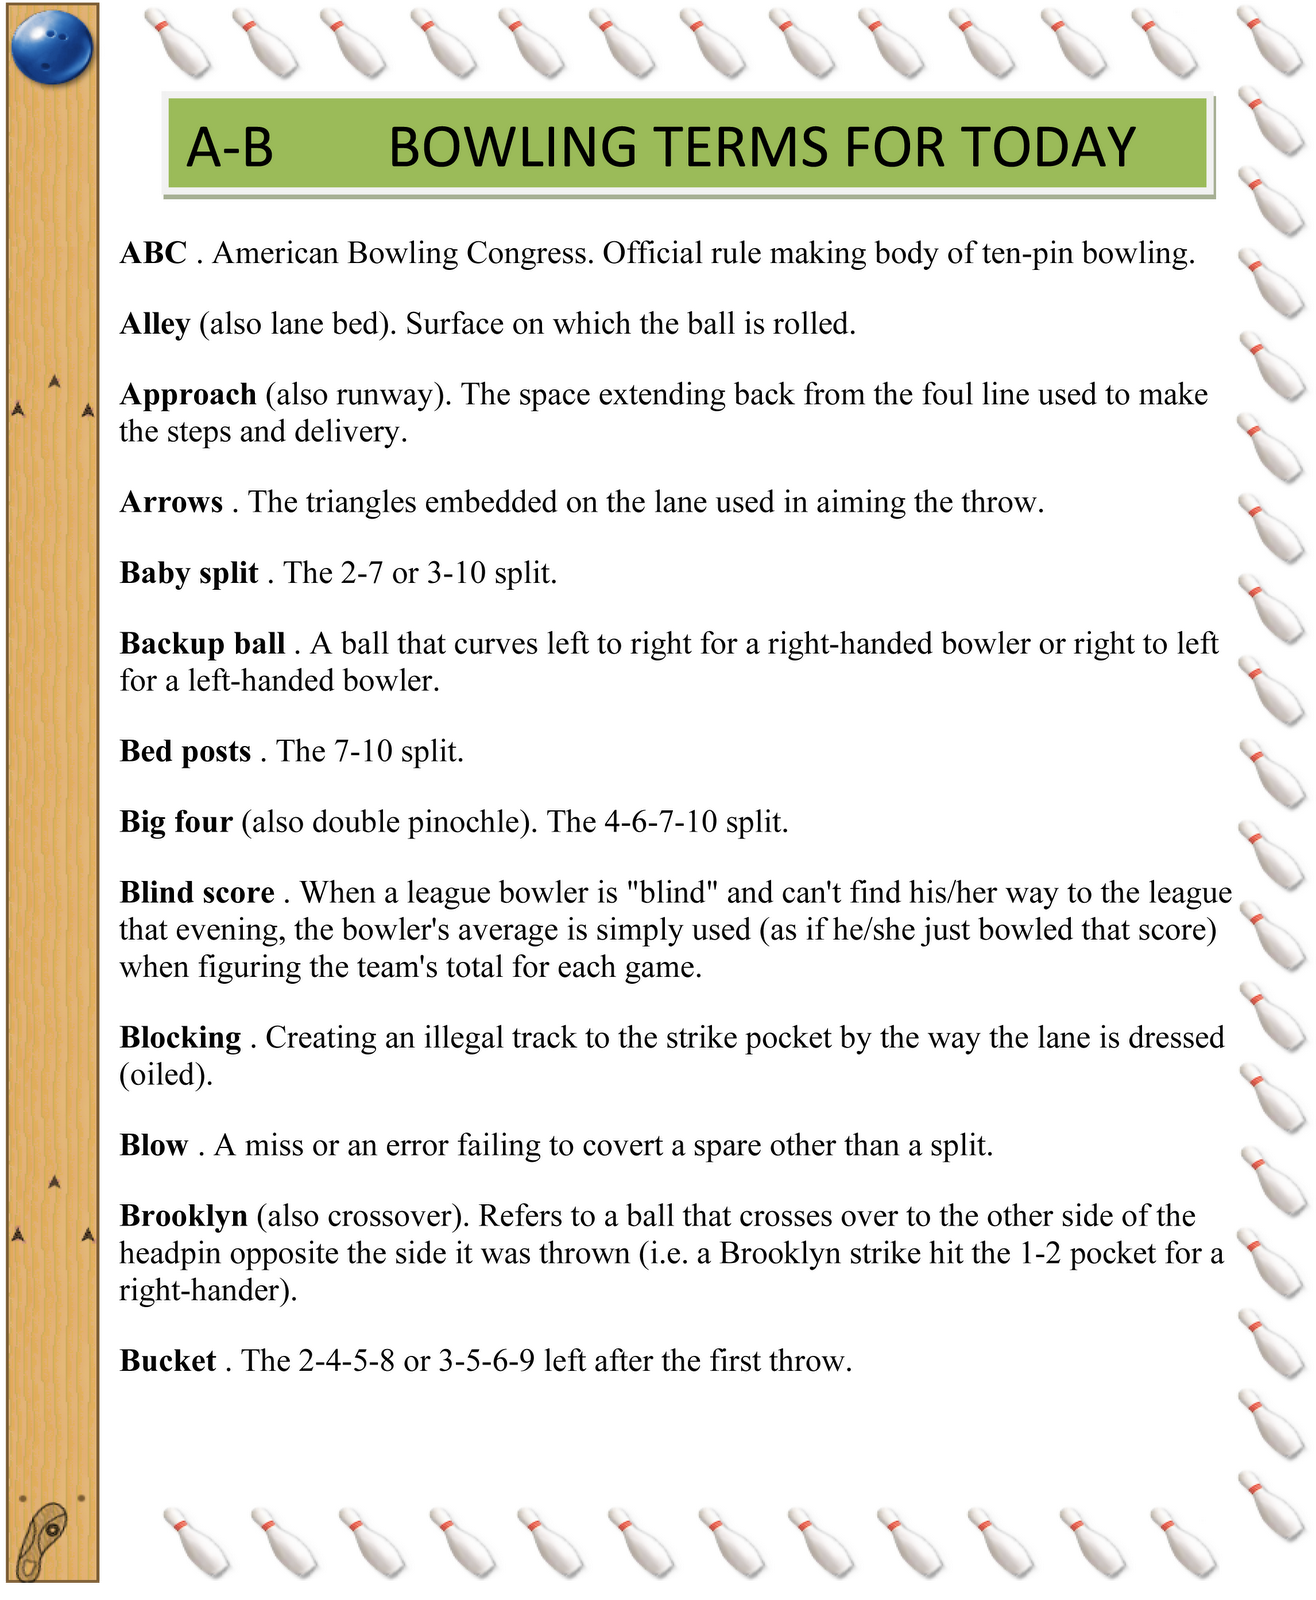 Terms: LOVE 2 BOWL: BOWLING TERMS FOR TODAY